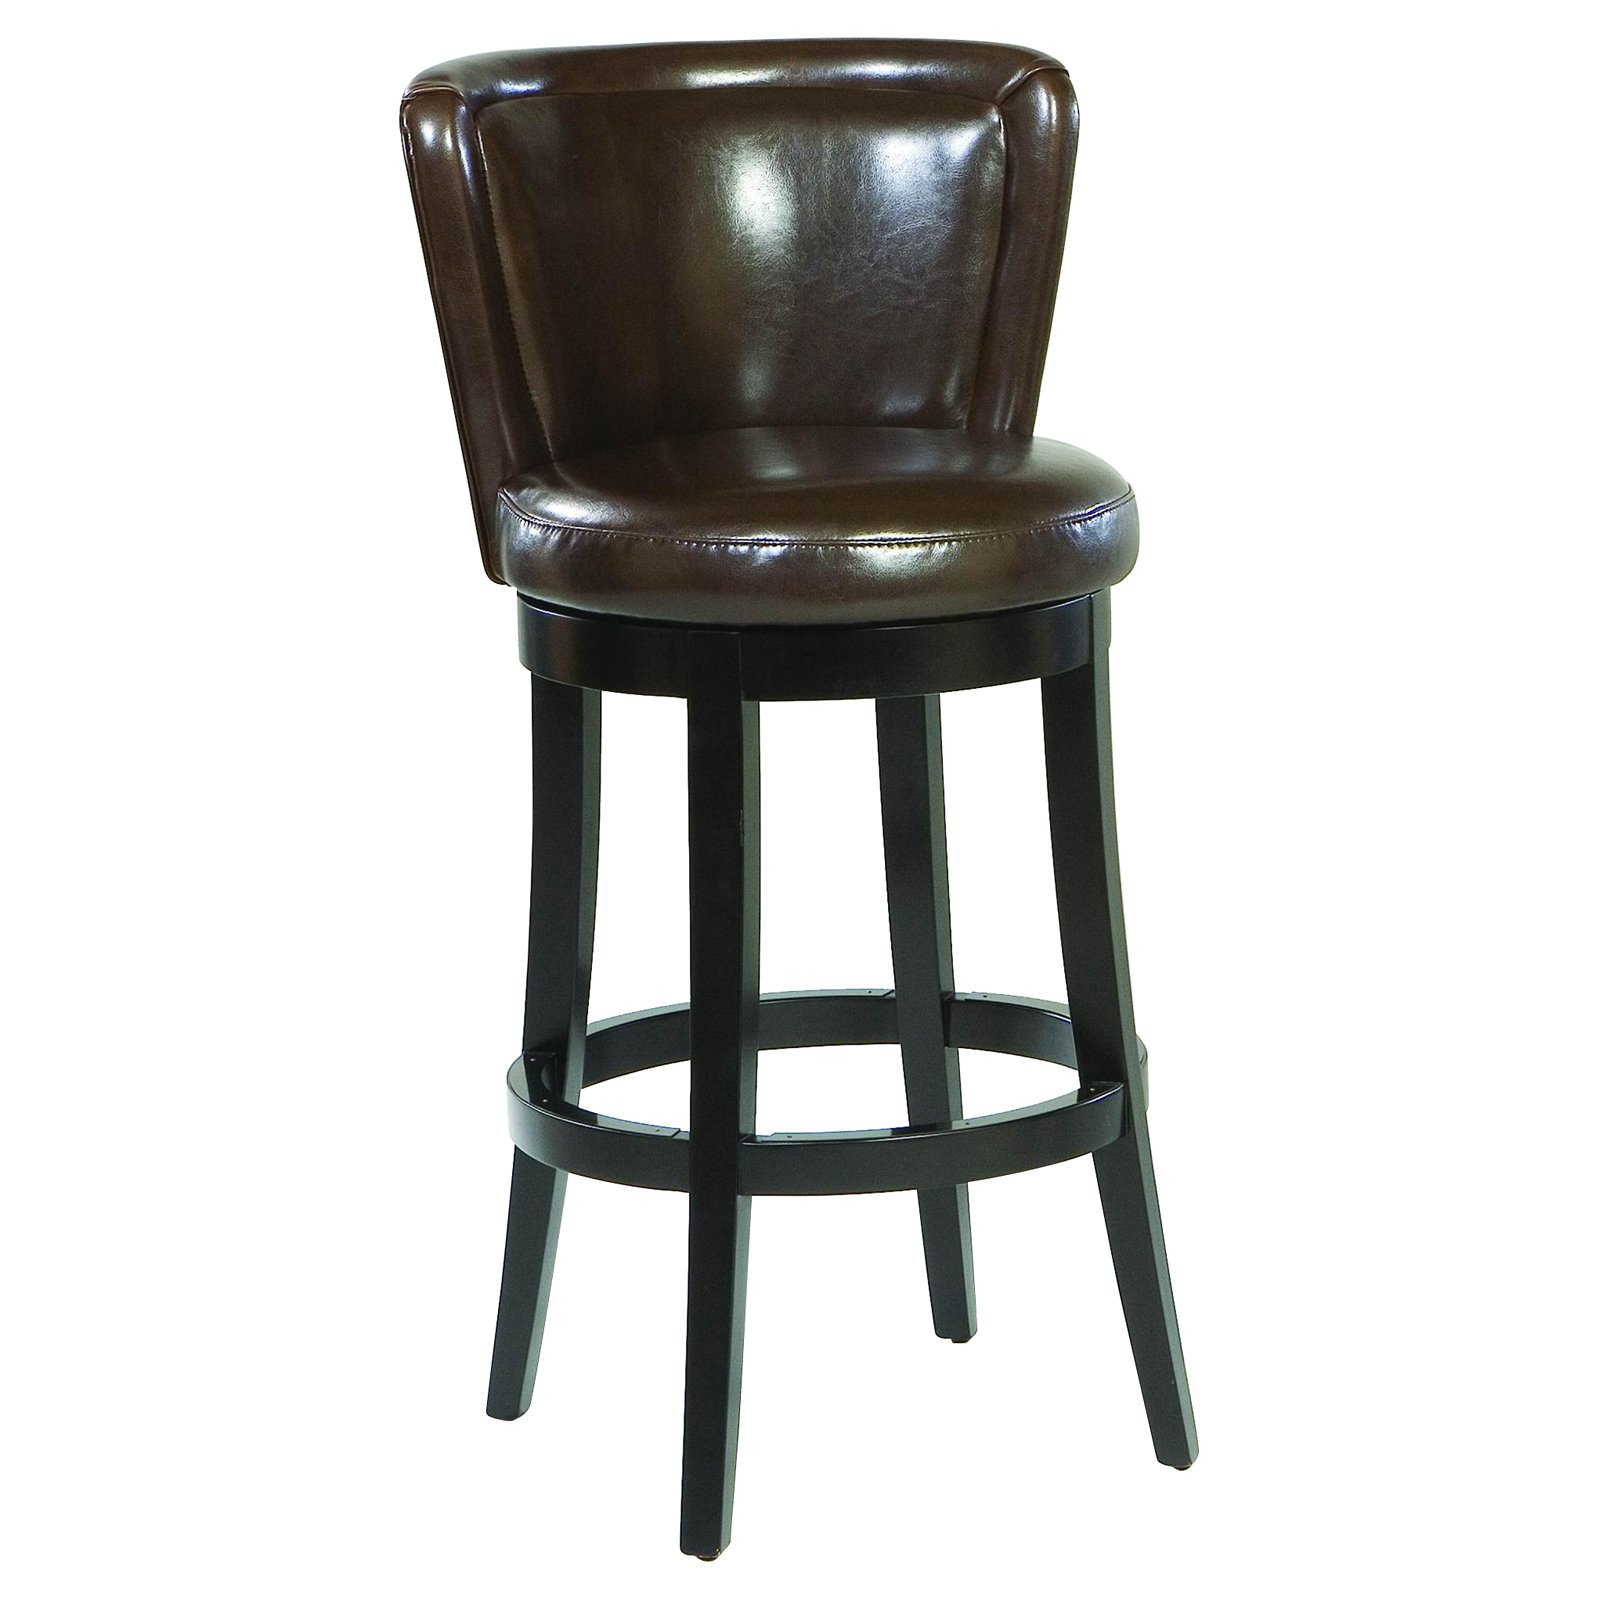 Cool leather bar stools for home furniture with leather swivel bar stools